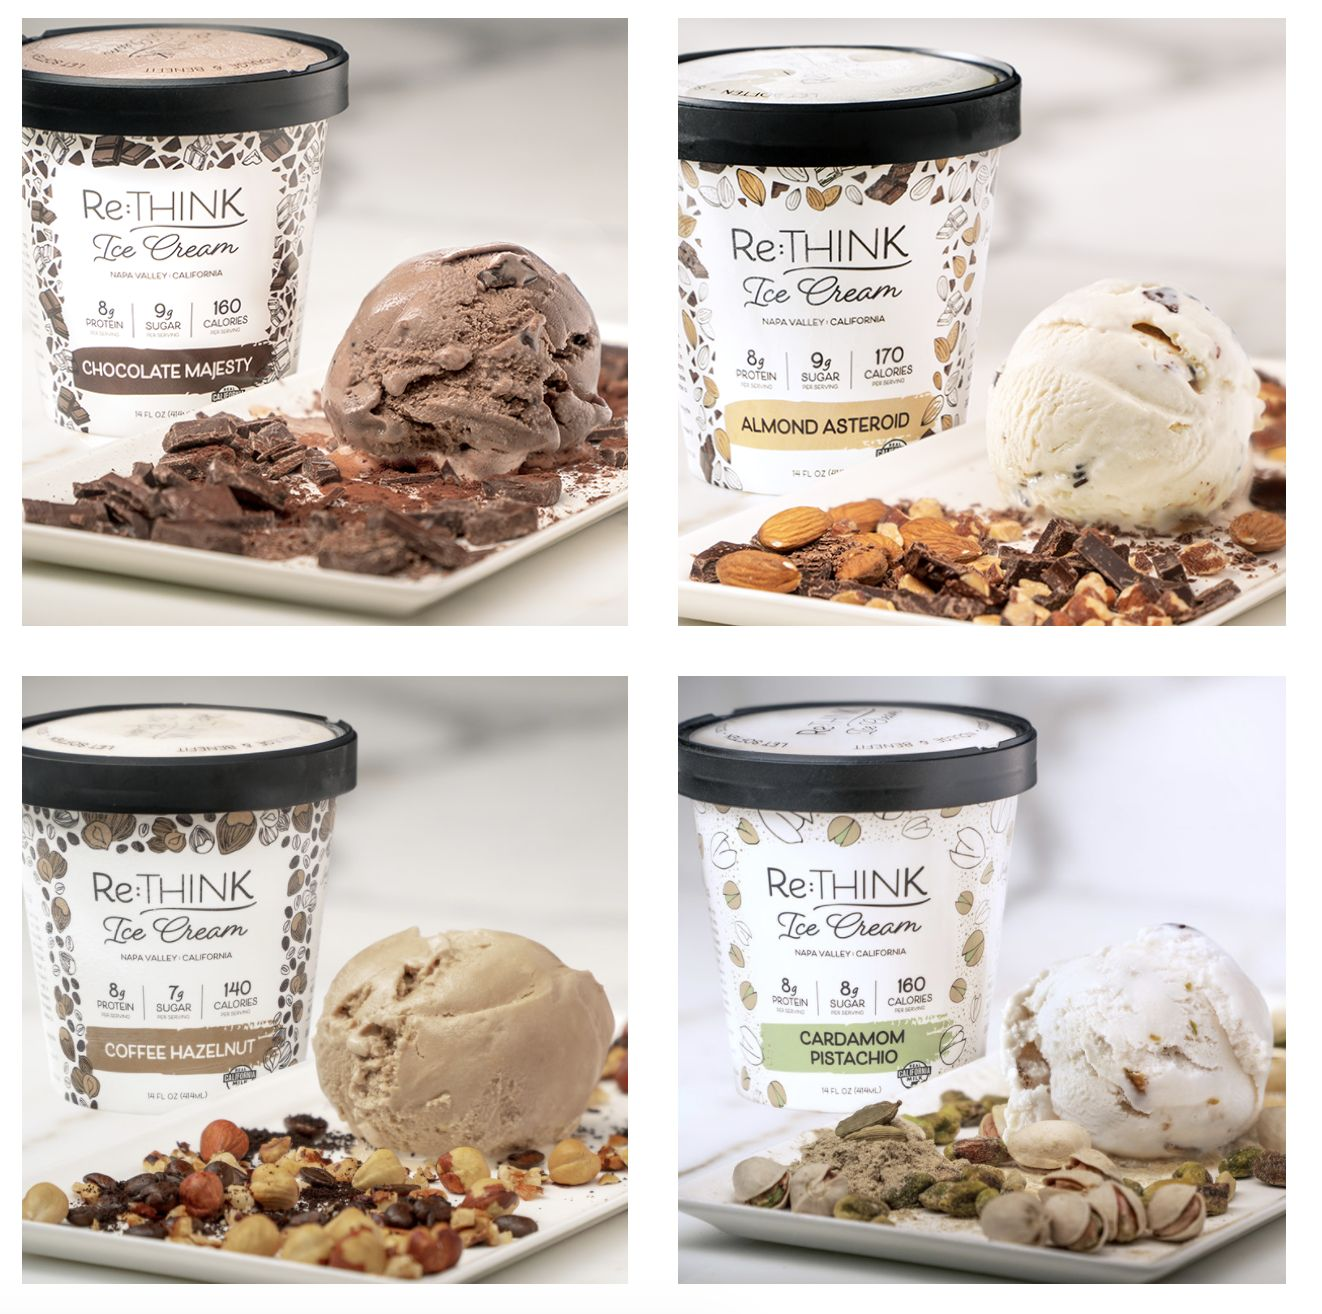 Ice cream that makes you feel better? Re:THINK has done it